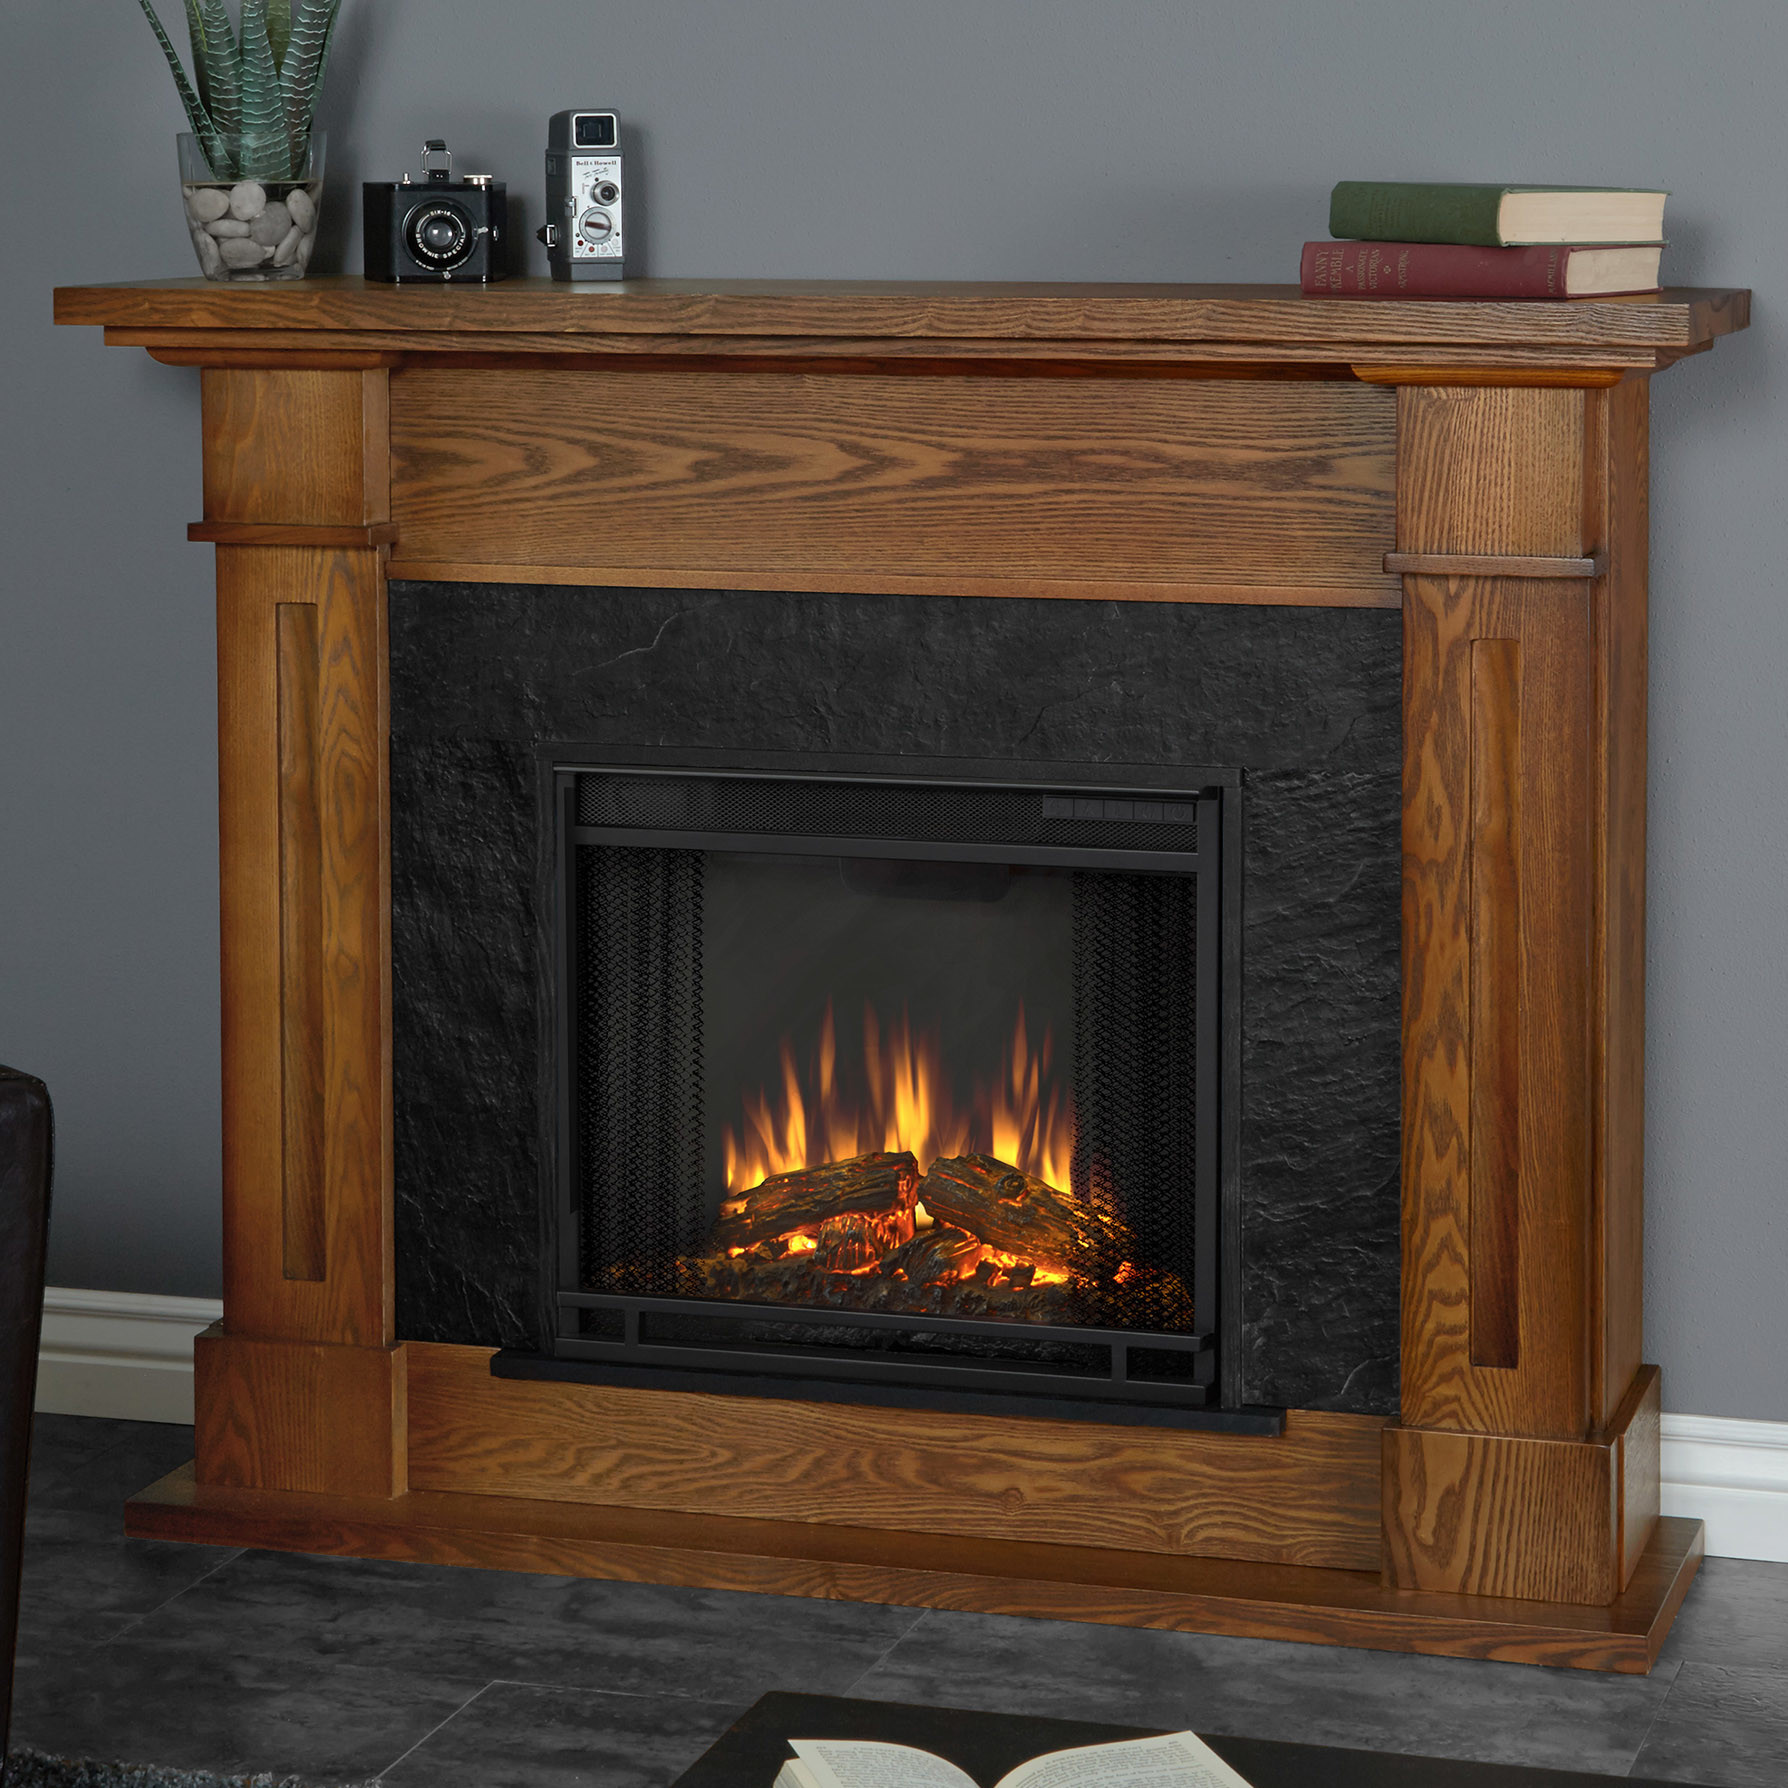 Best ideas about Real Flame Fireplace . Save or Pin Real Flame Kipling Electric Fireplace & Reviews Now.